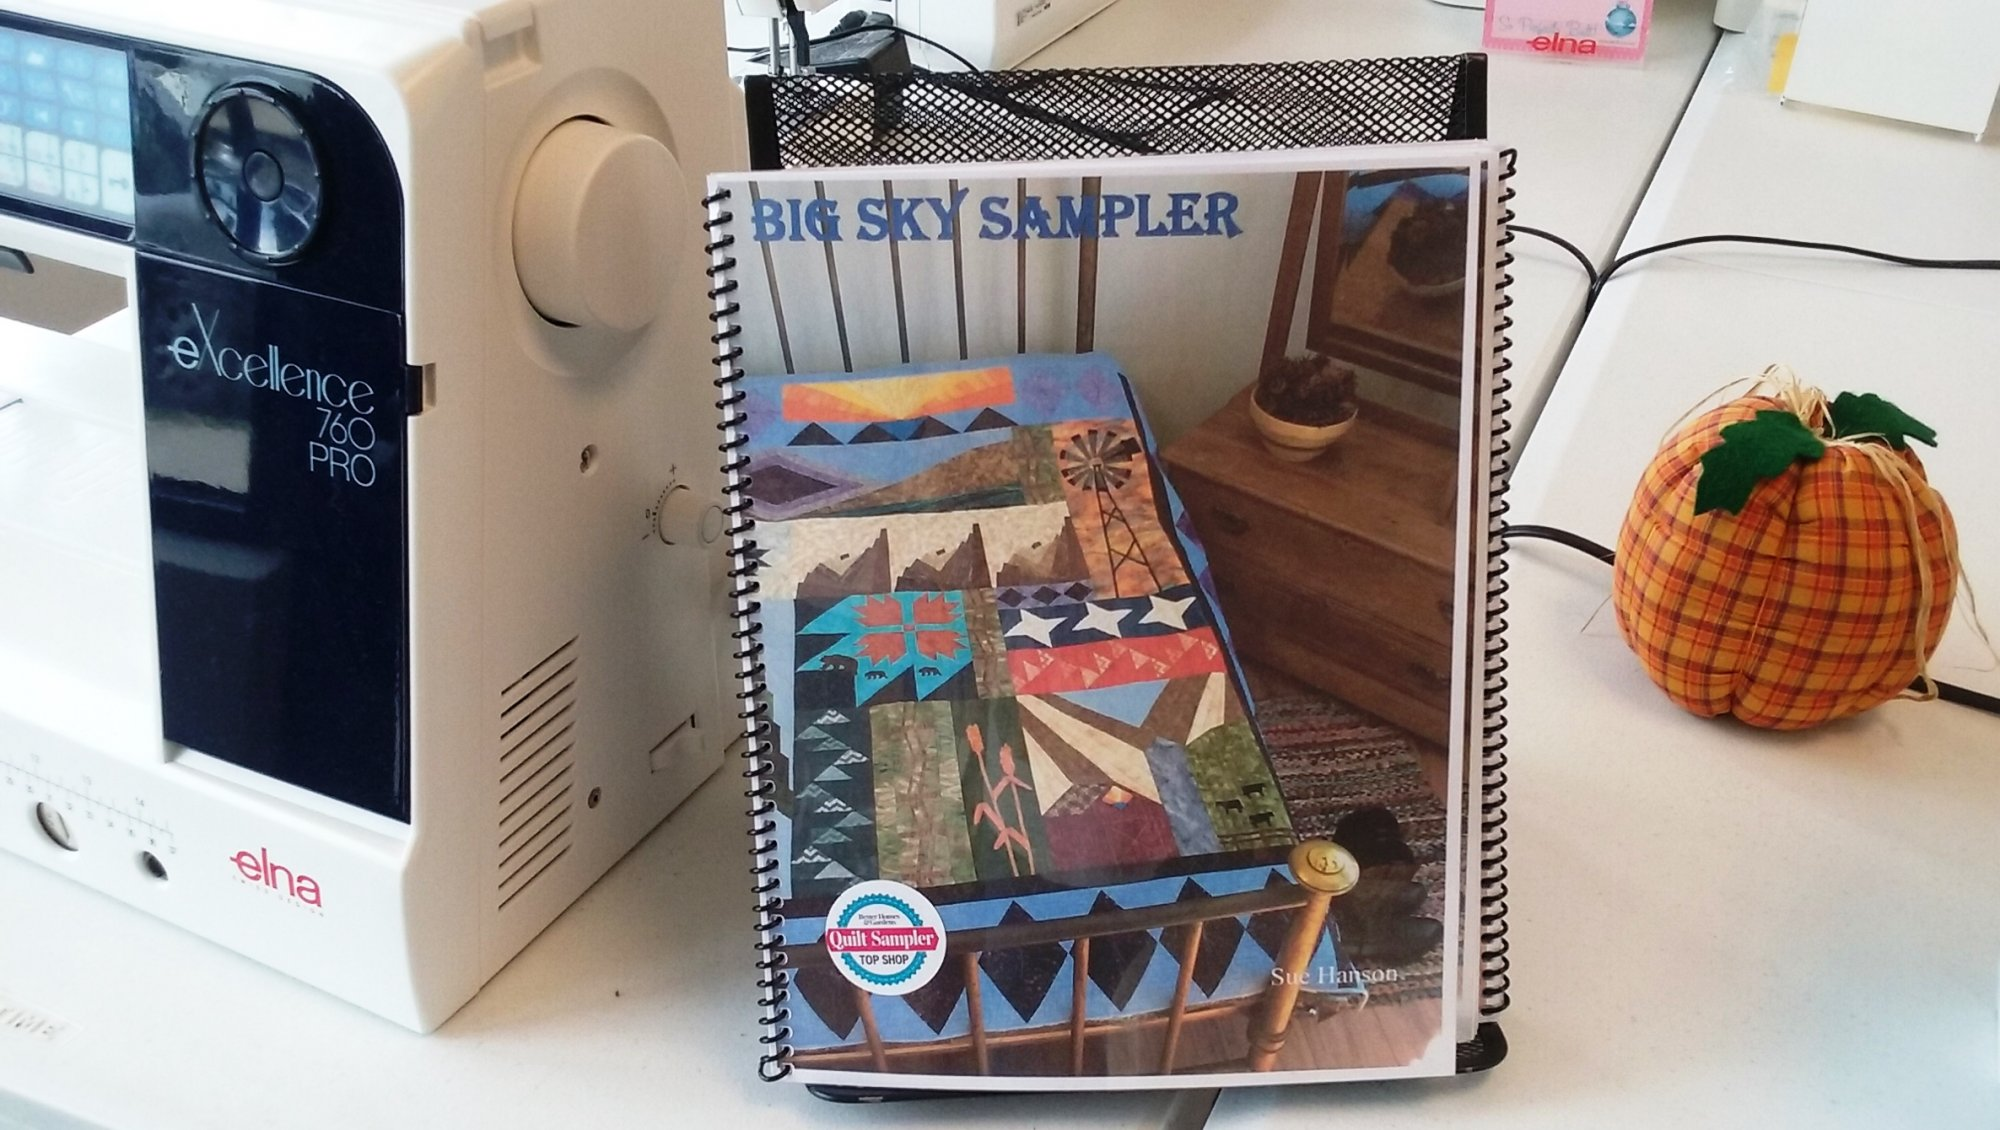 Big Sky Sampler book